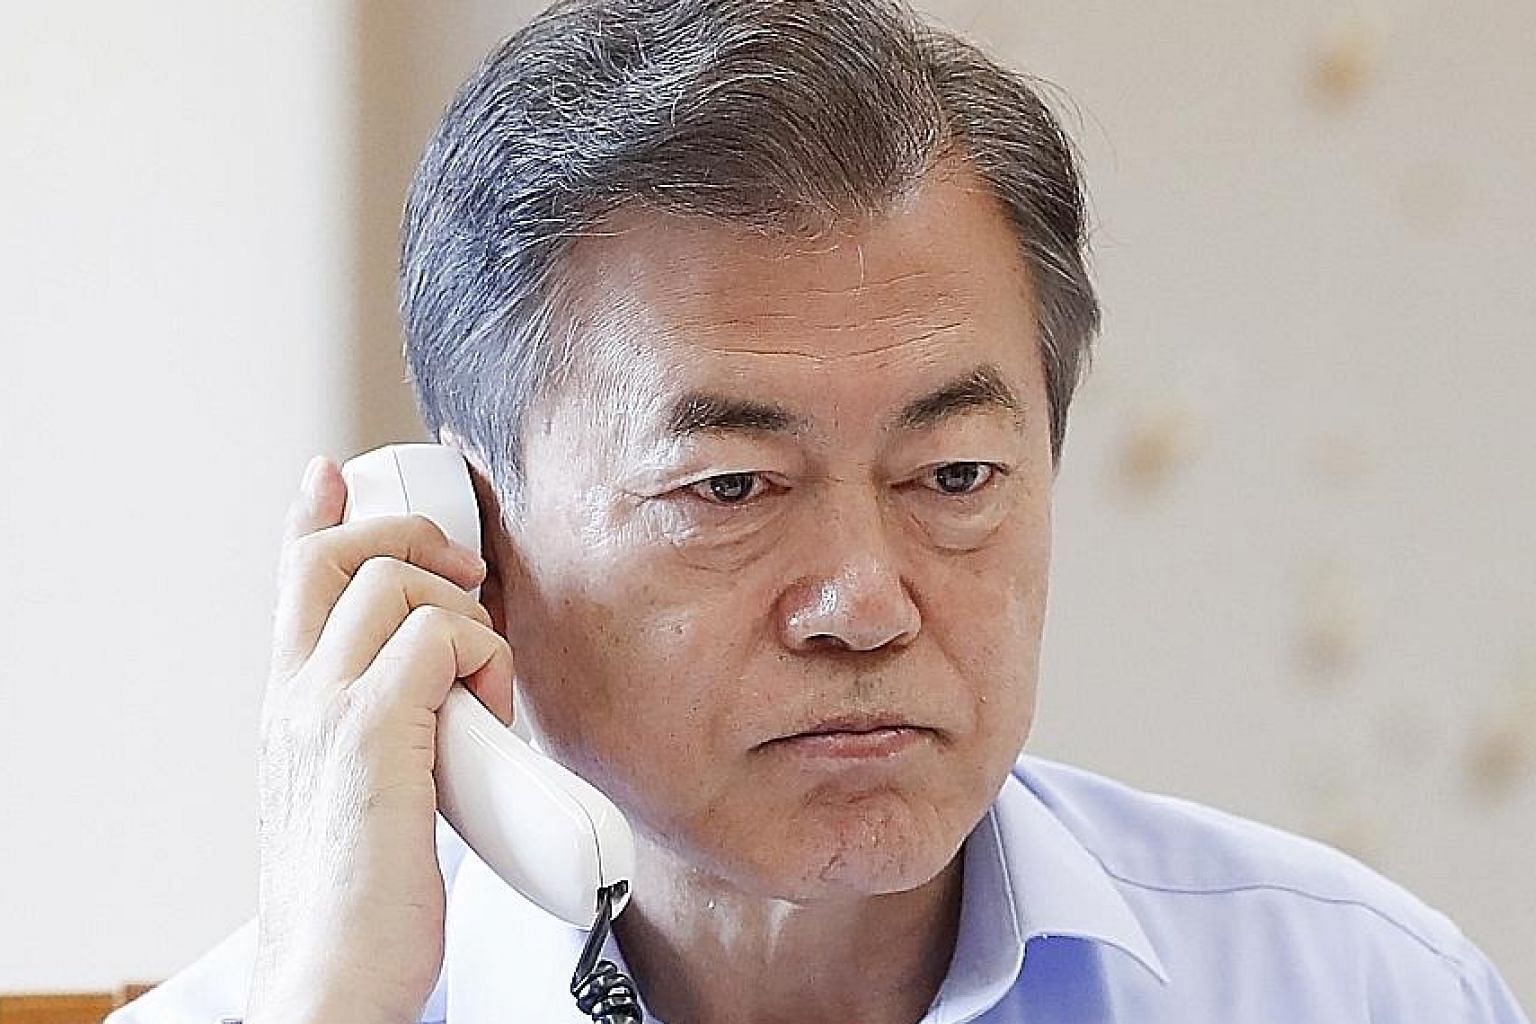 President Moon Jae In talking with President Donald Trump on the telephone at the Blue House presidential office in Seoul yesterday, ahead of their meeting tomorrow in Washington.